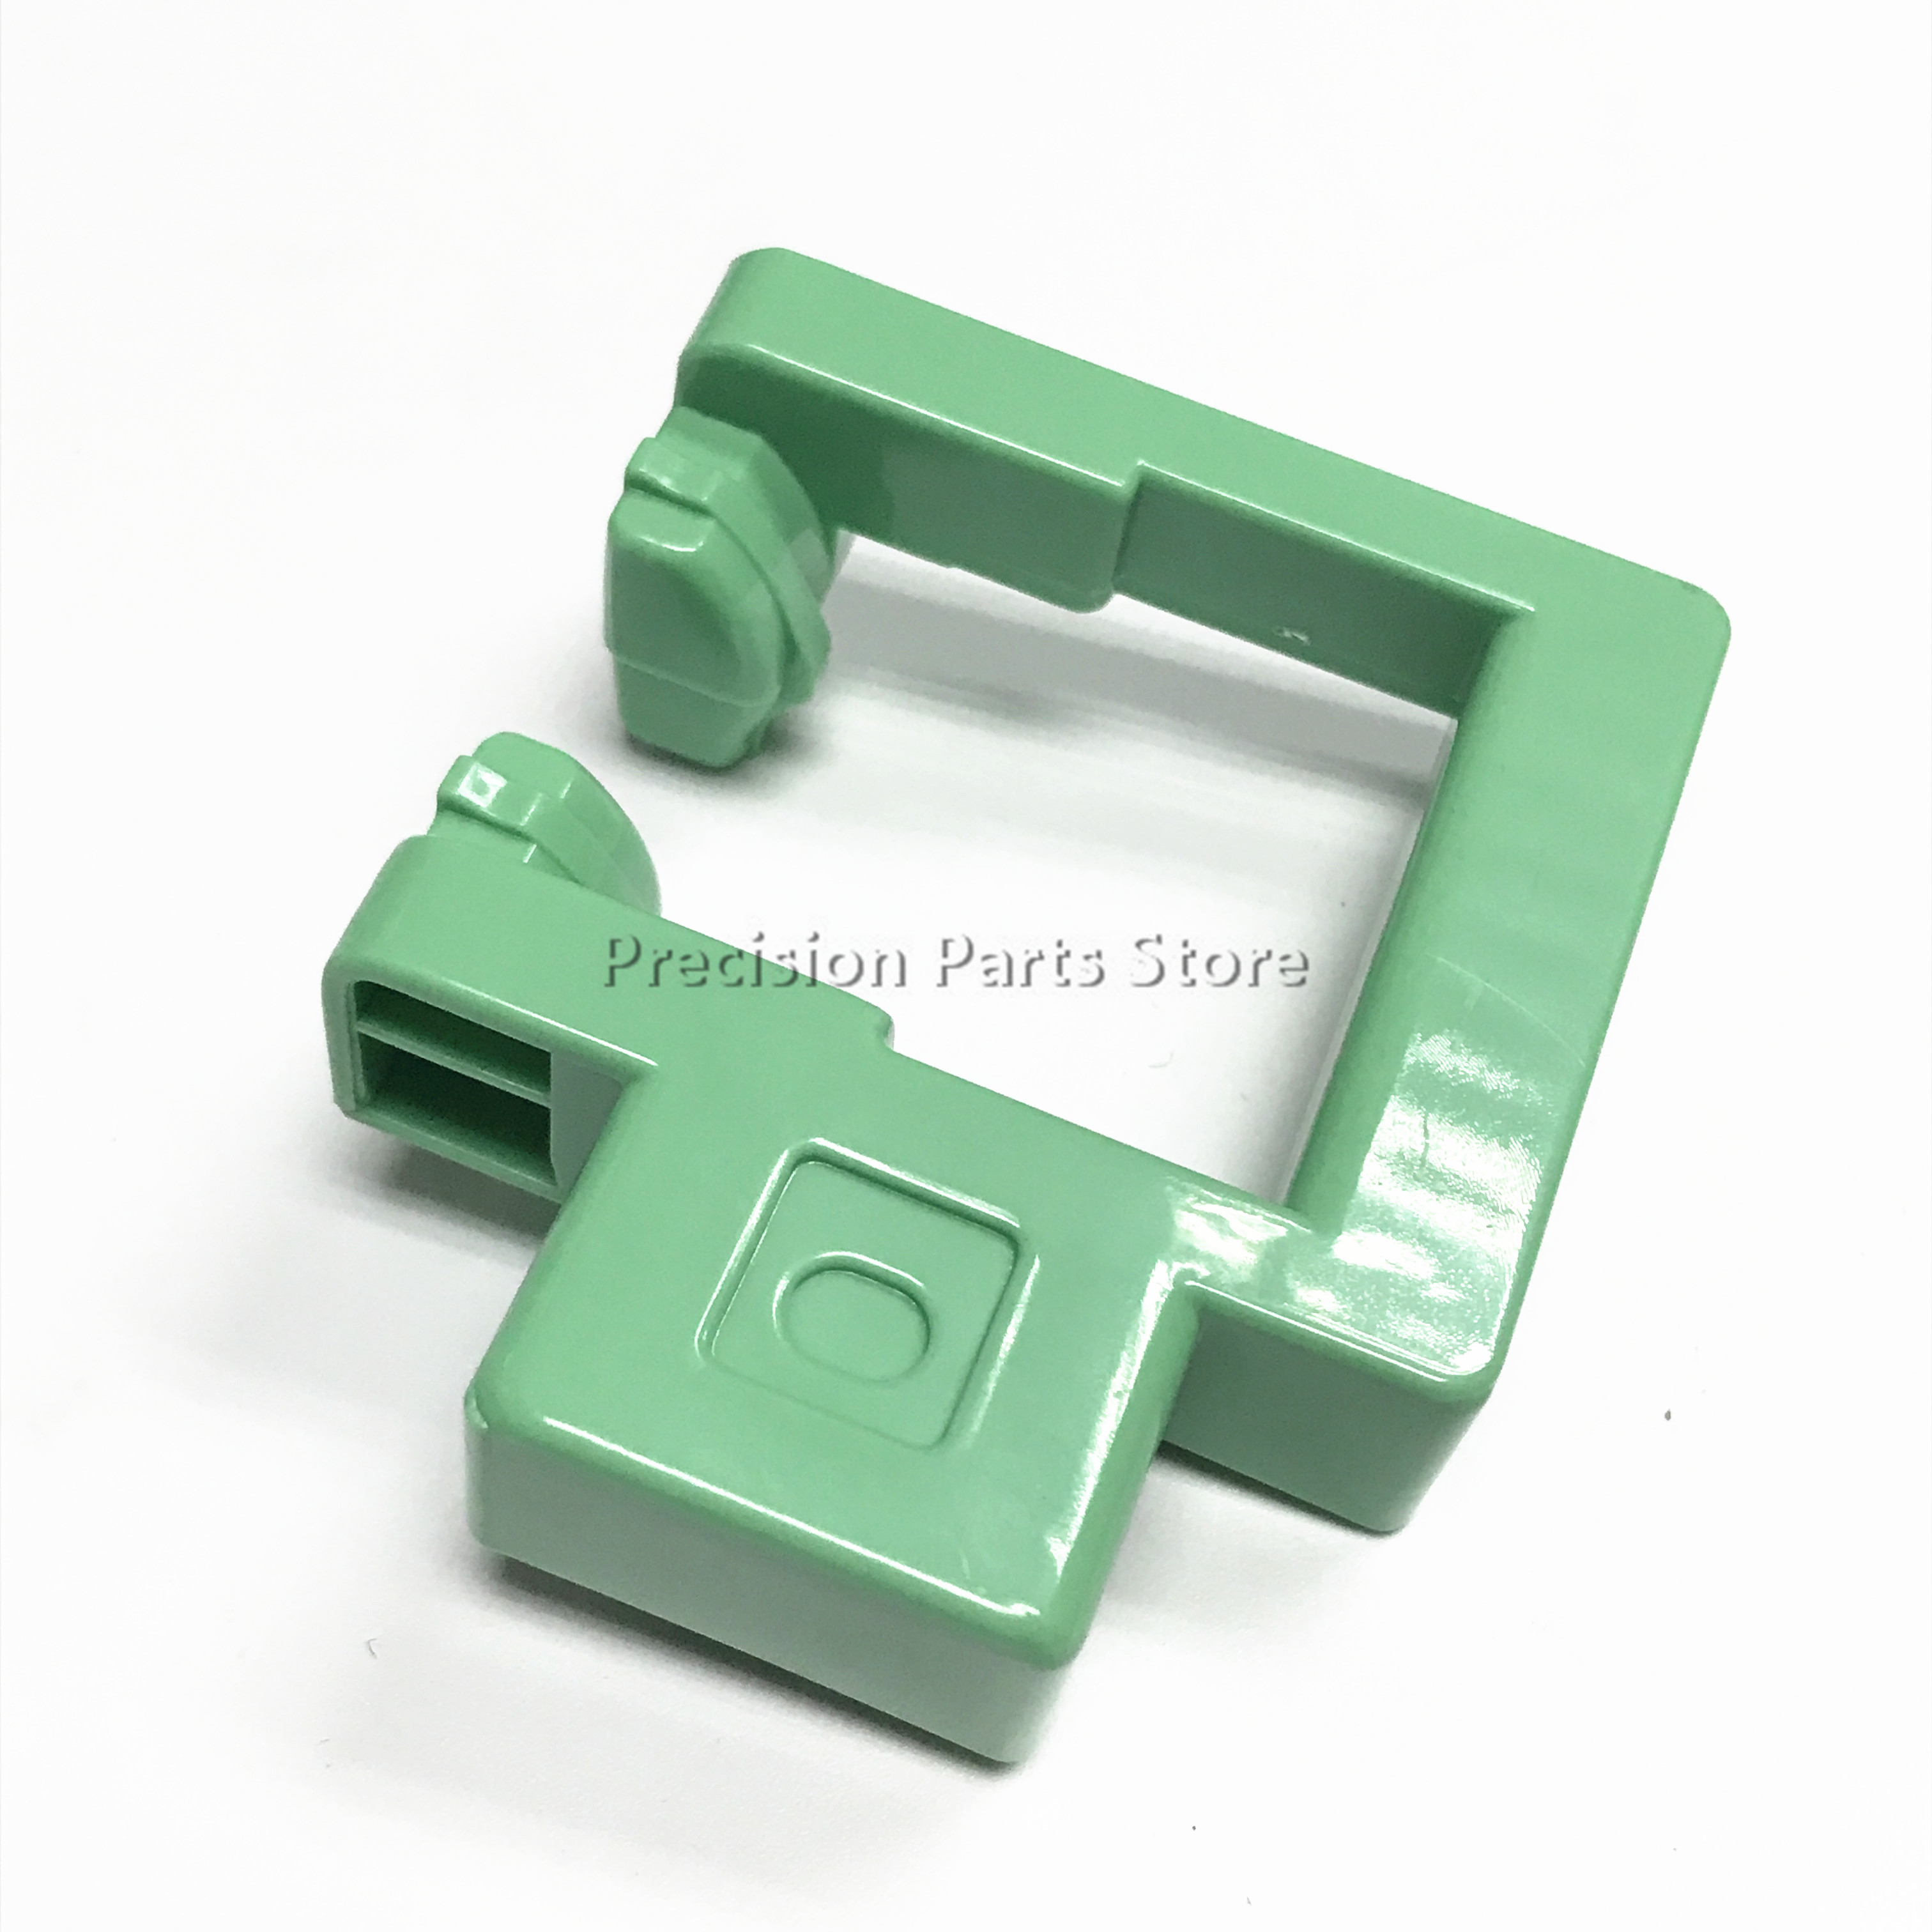 B0443461 B044-3461 Compatible new handle For Ricoh AF 1515 1013 175 175L Green Handle on toner supply-2